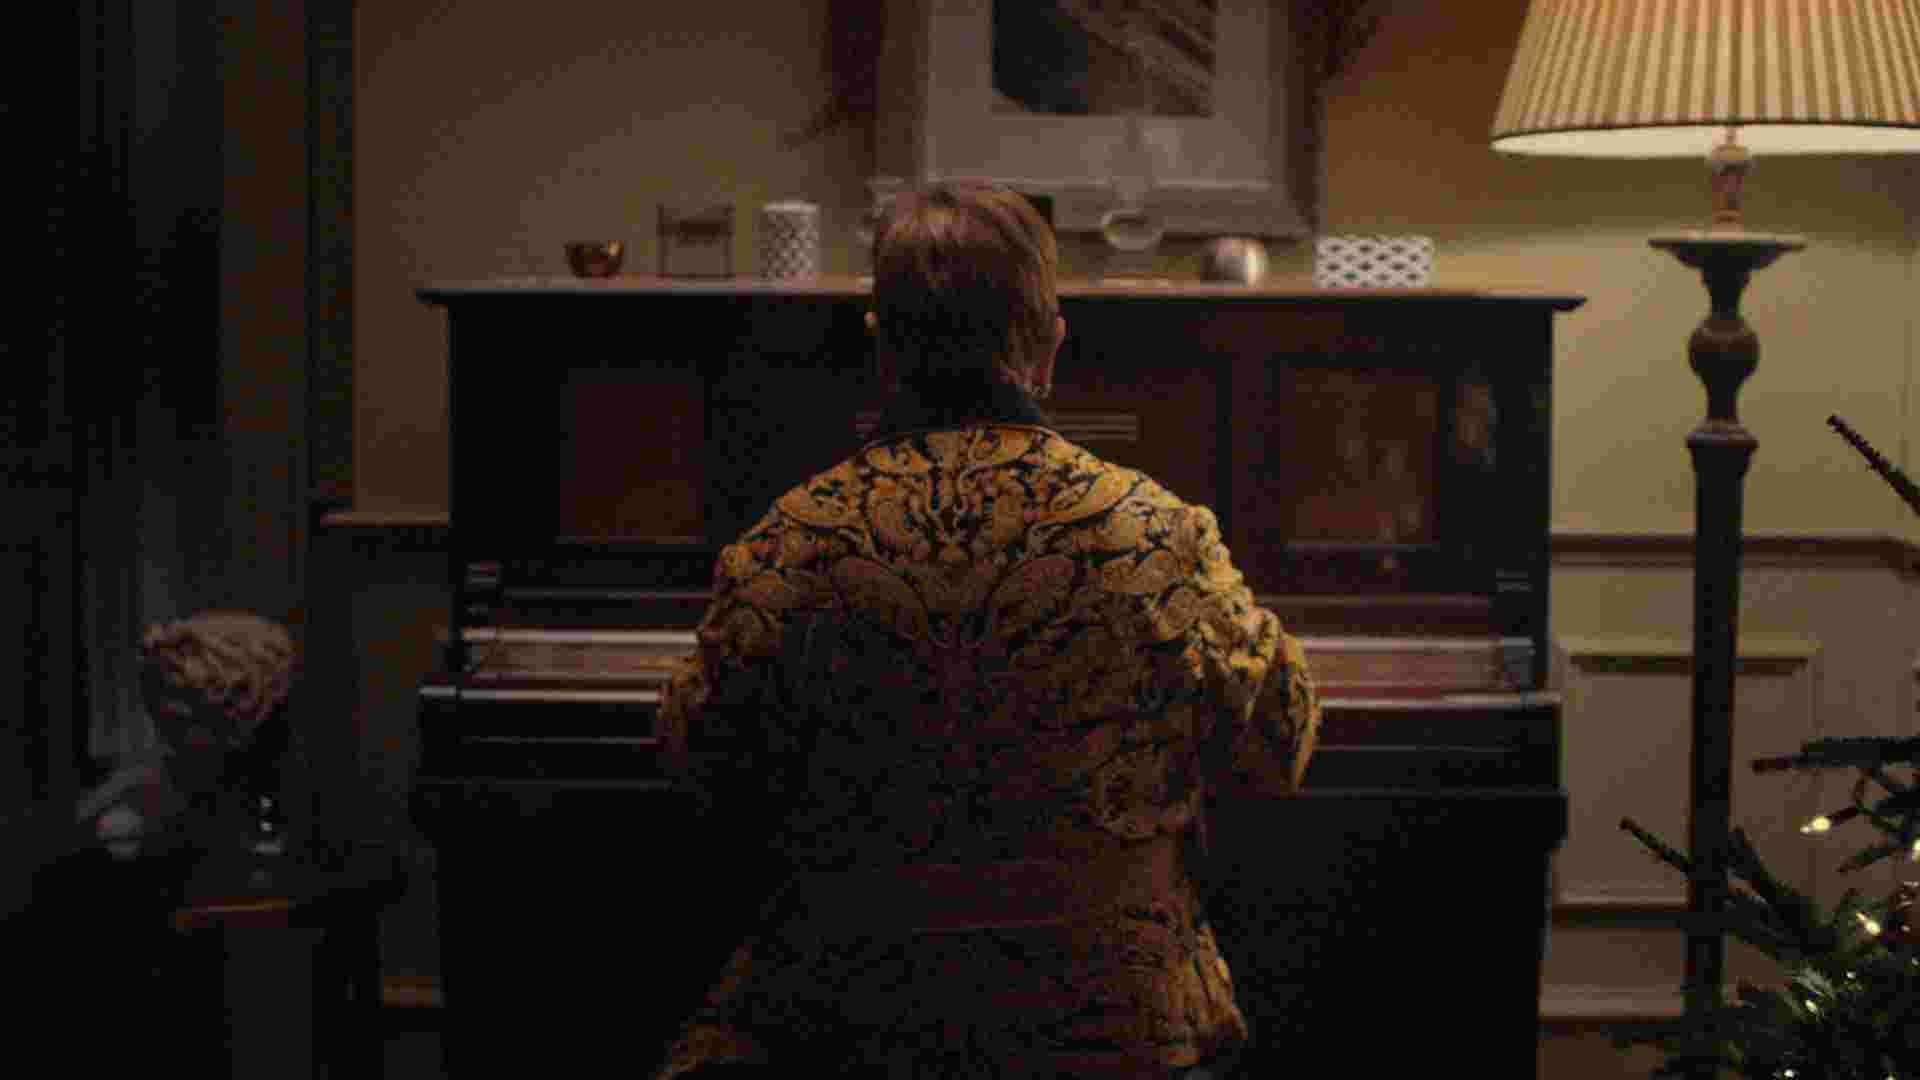 Sir Elton John, sitting at his first piano in a darkened Christmas-decorated sitting room